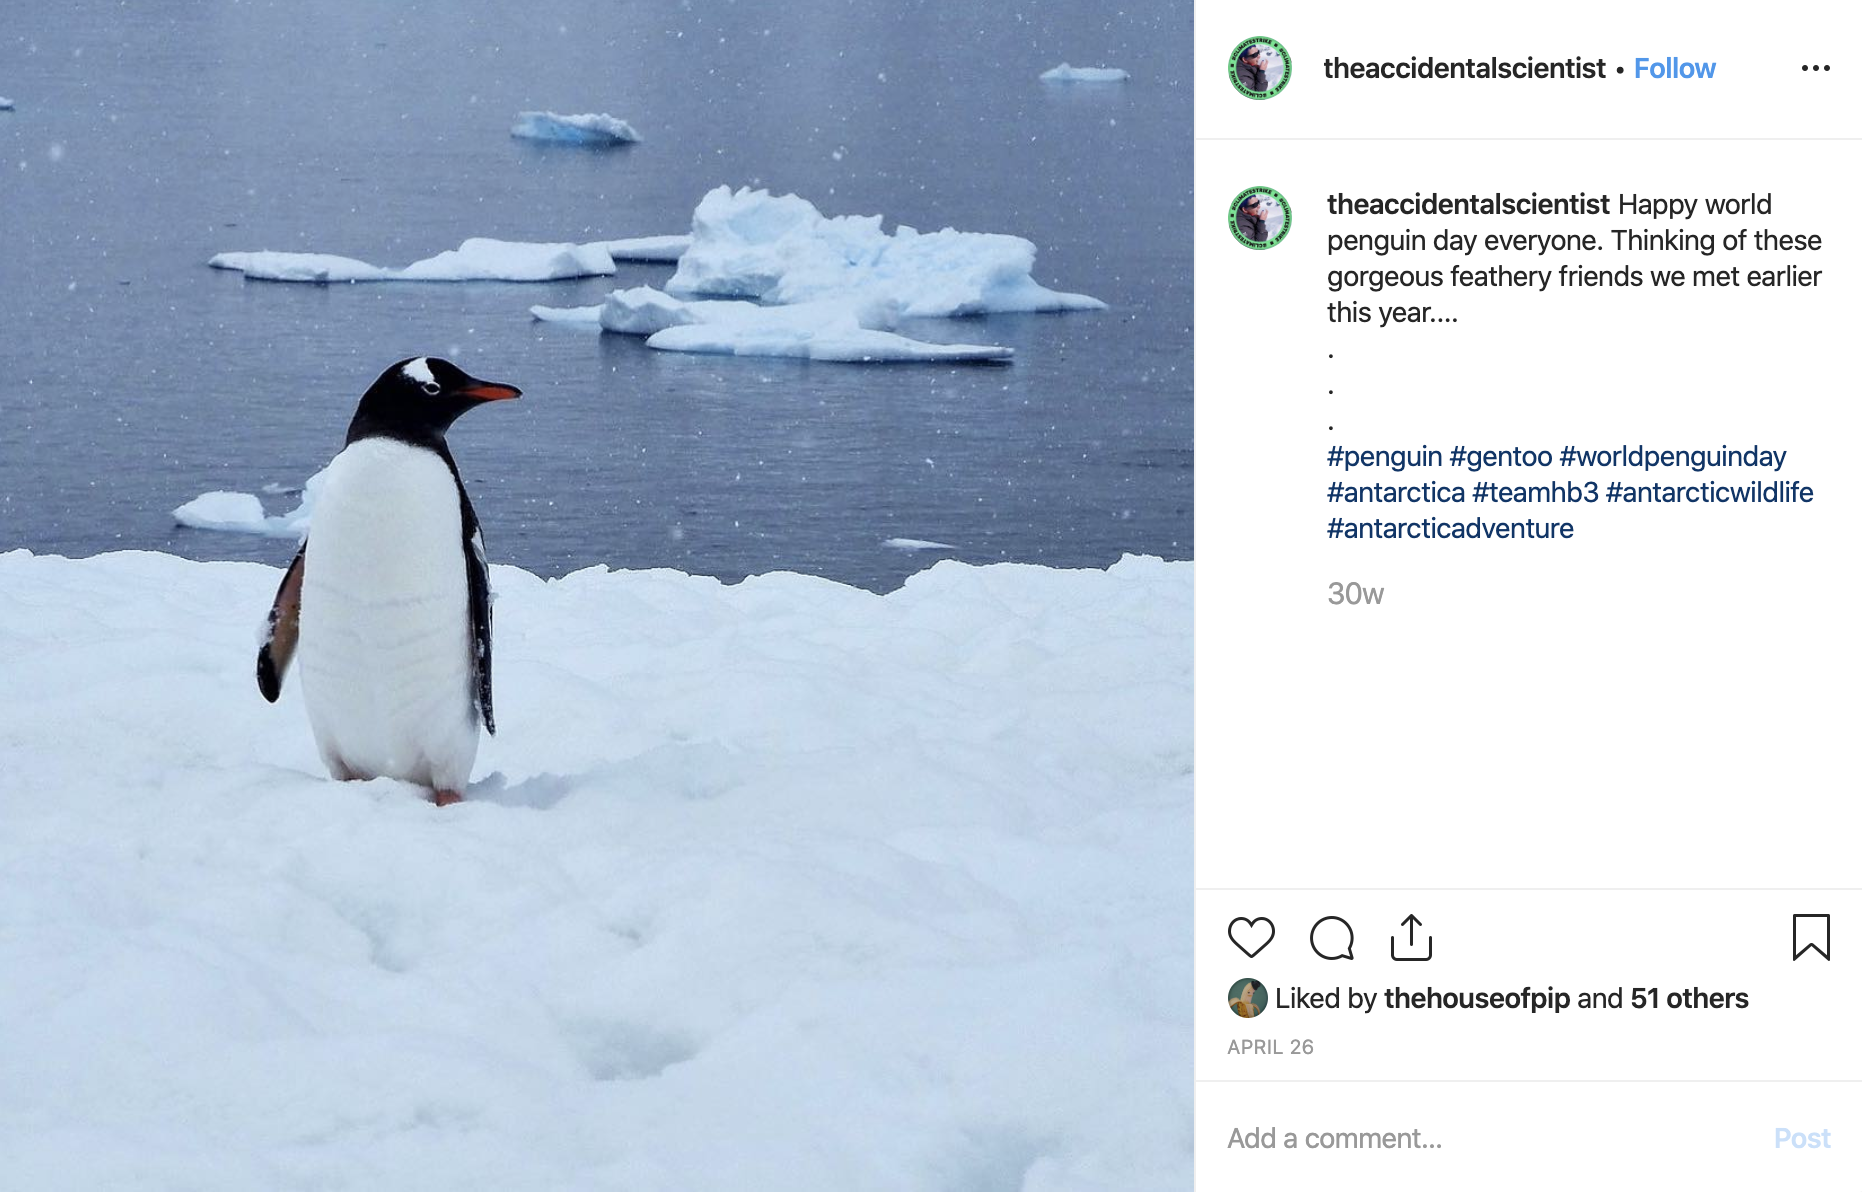 The Accidental Scientist Instagram